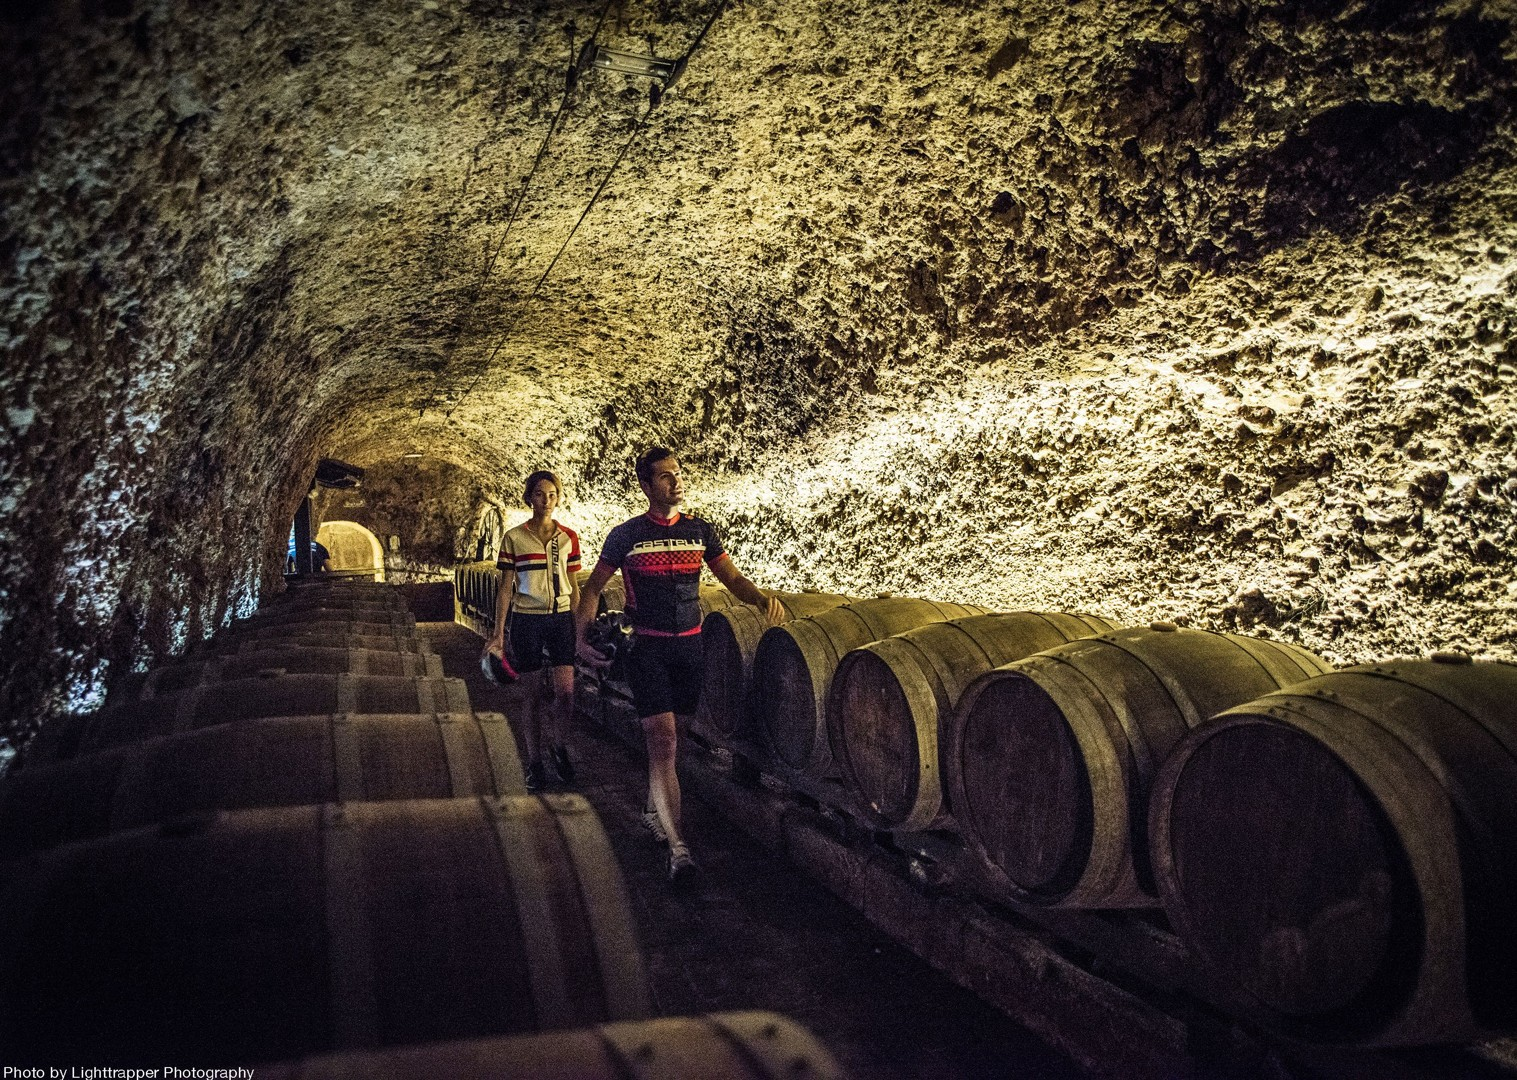 wine-caves-rioja-spain-bodega-cycling-holiday.jpg - Northern Spain - La Rioja - Ruta del Vino - Self-Guided Road Cycling Holiday - Road Cycling